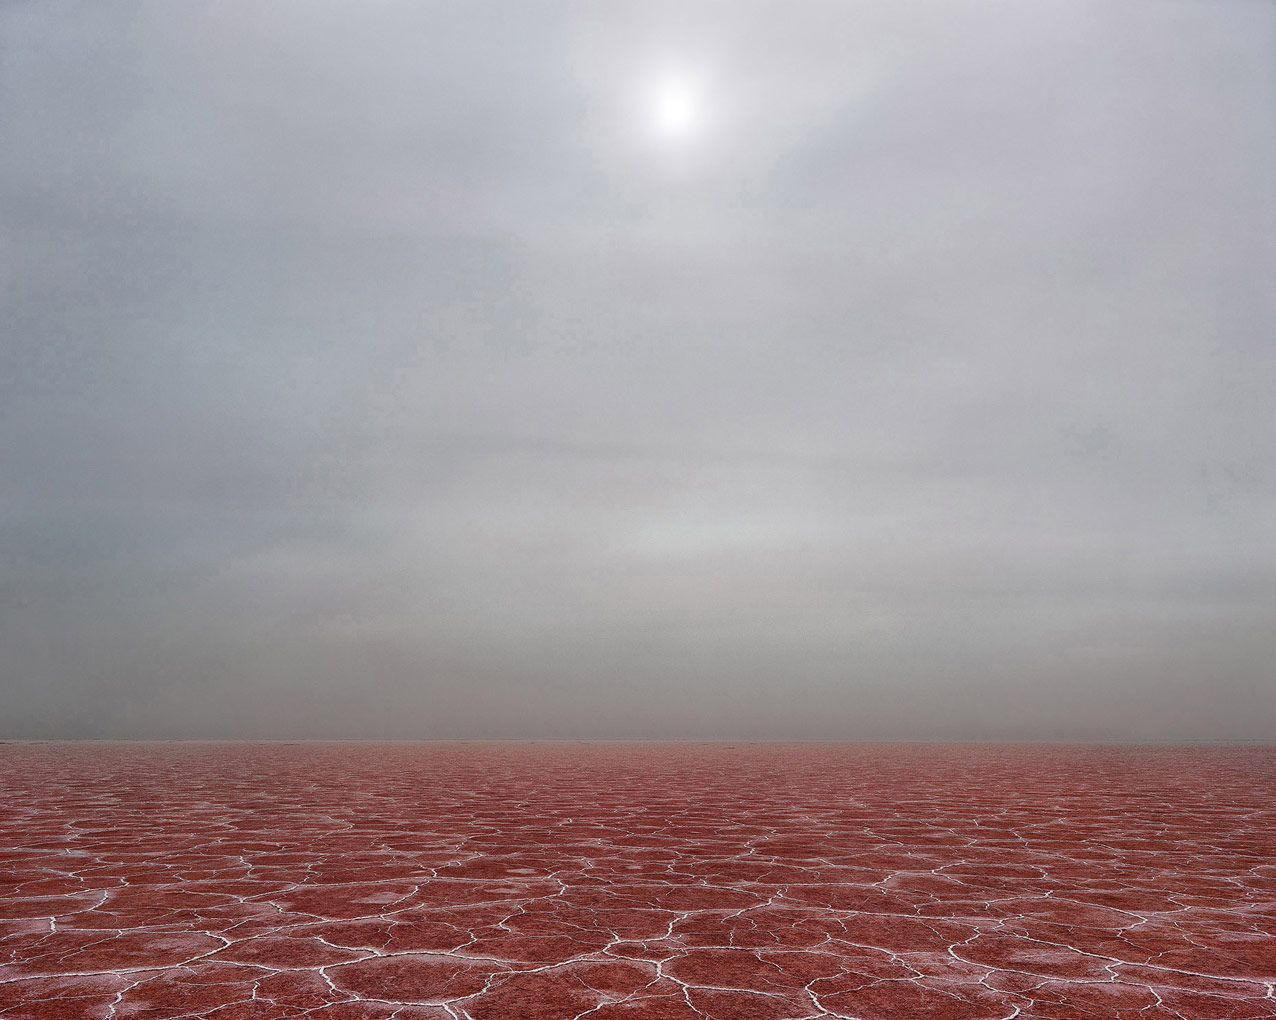 Salt 108, 120cm x 150cm, digital pigment print on cotton rag, edition of 7, 2006